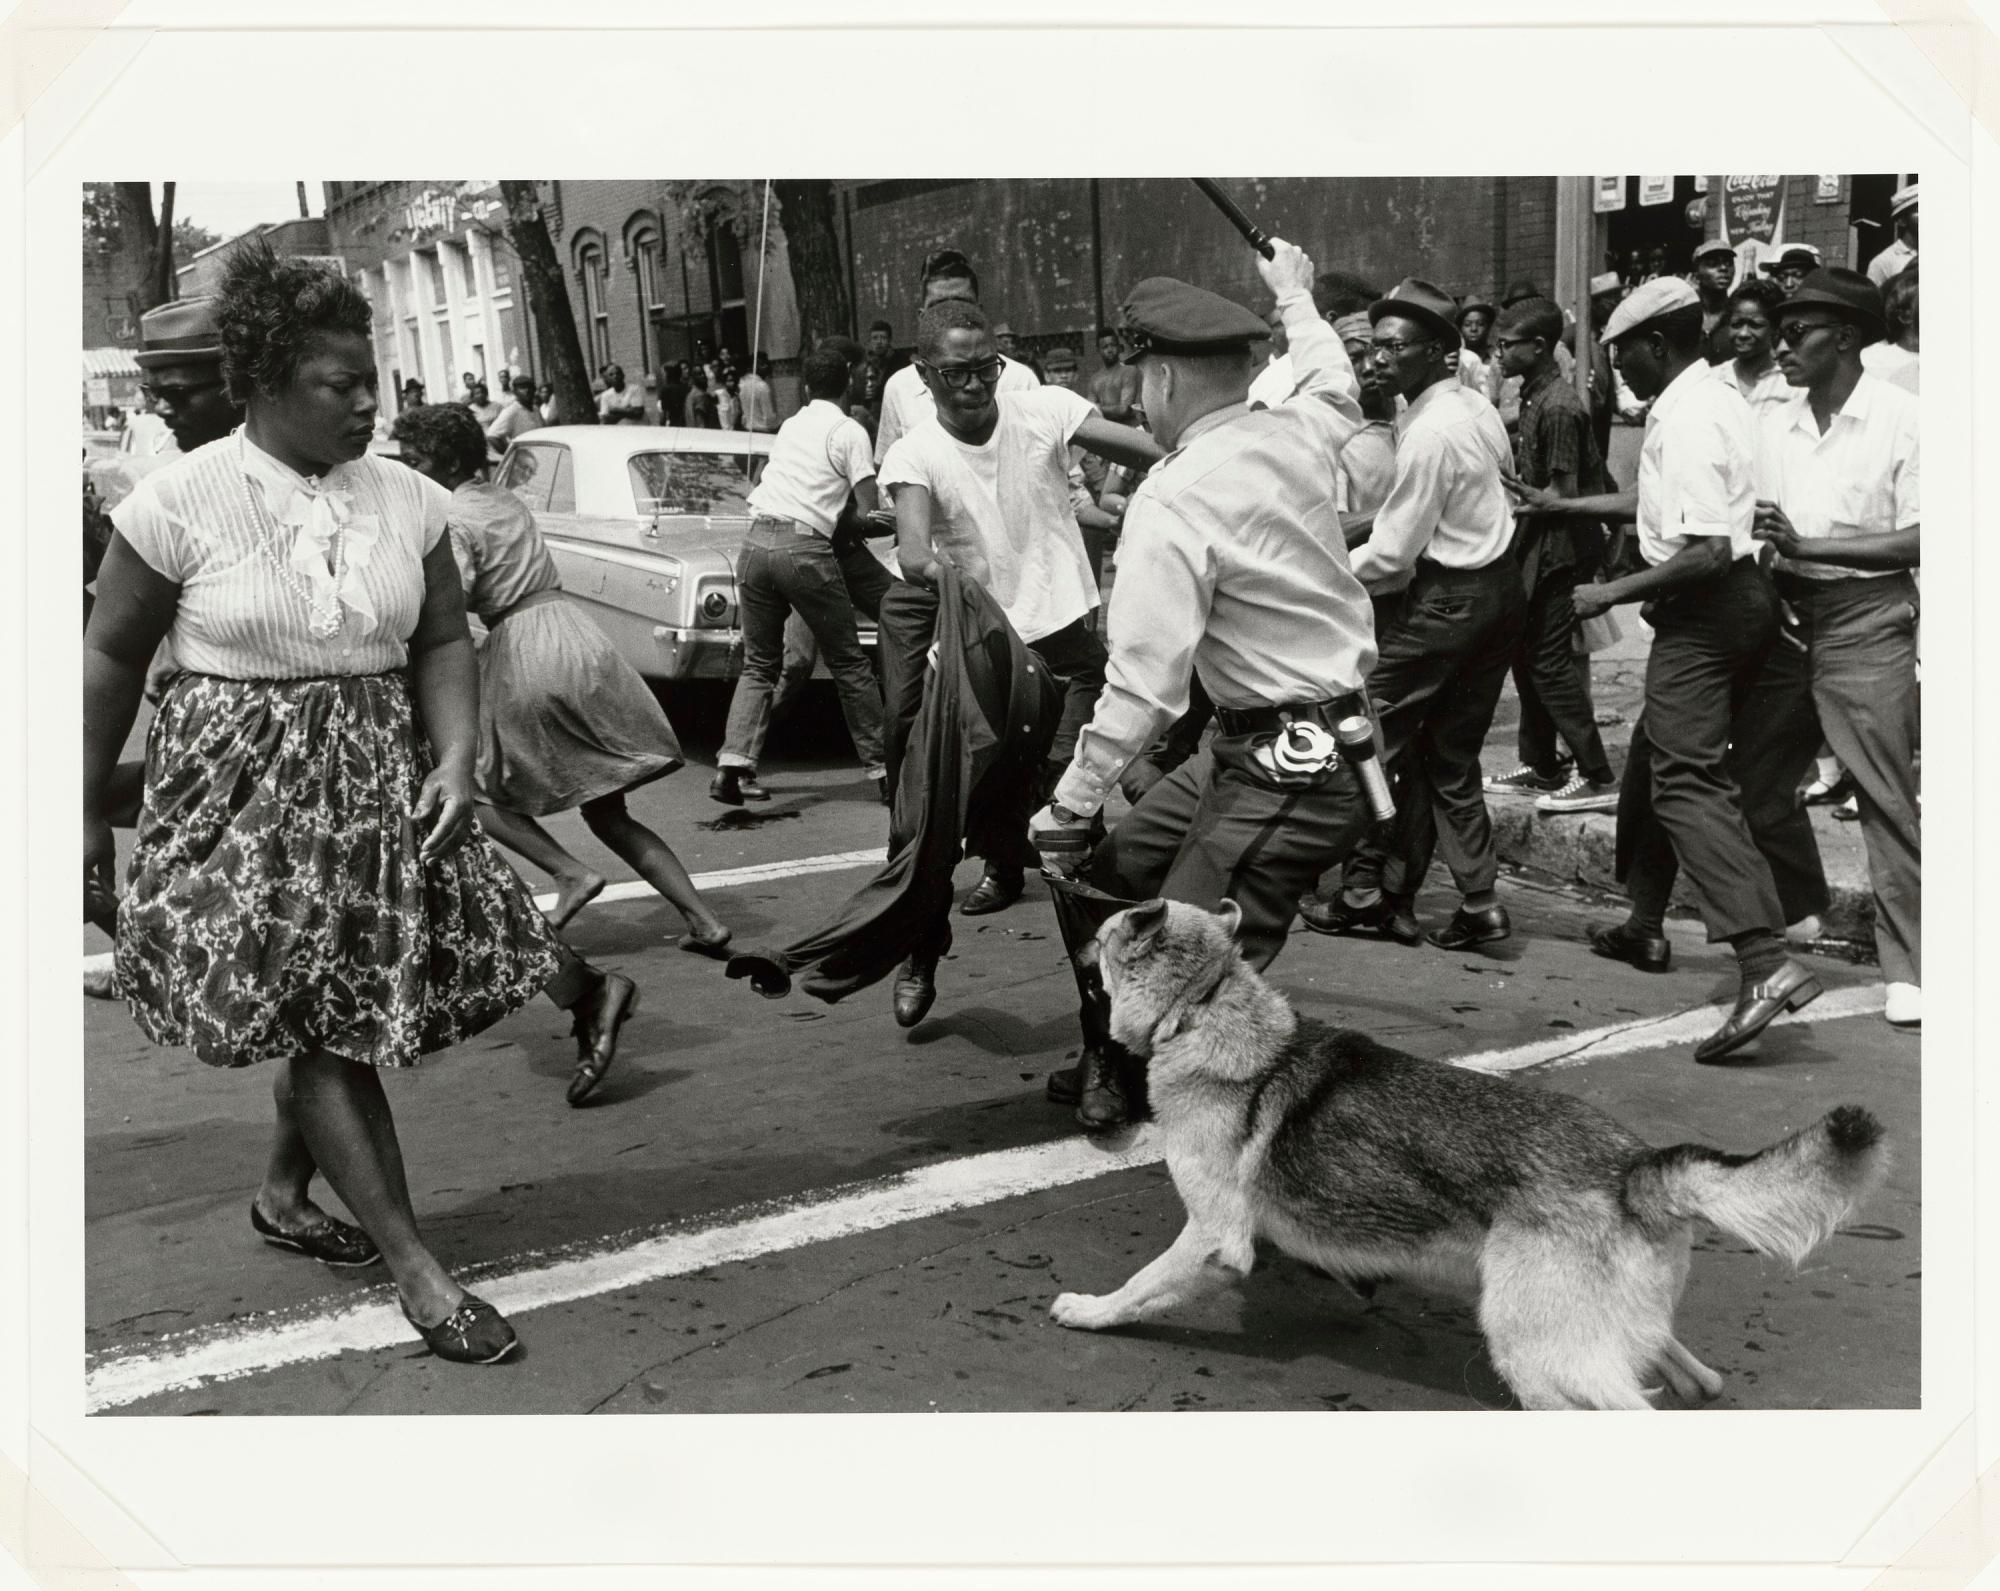 Civil Rights Movement, 1963